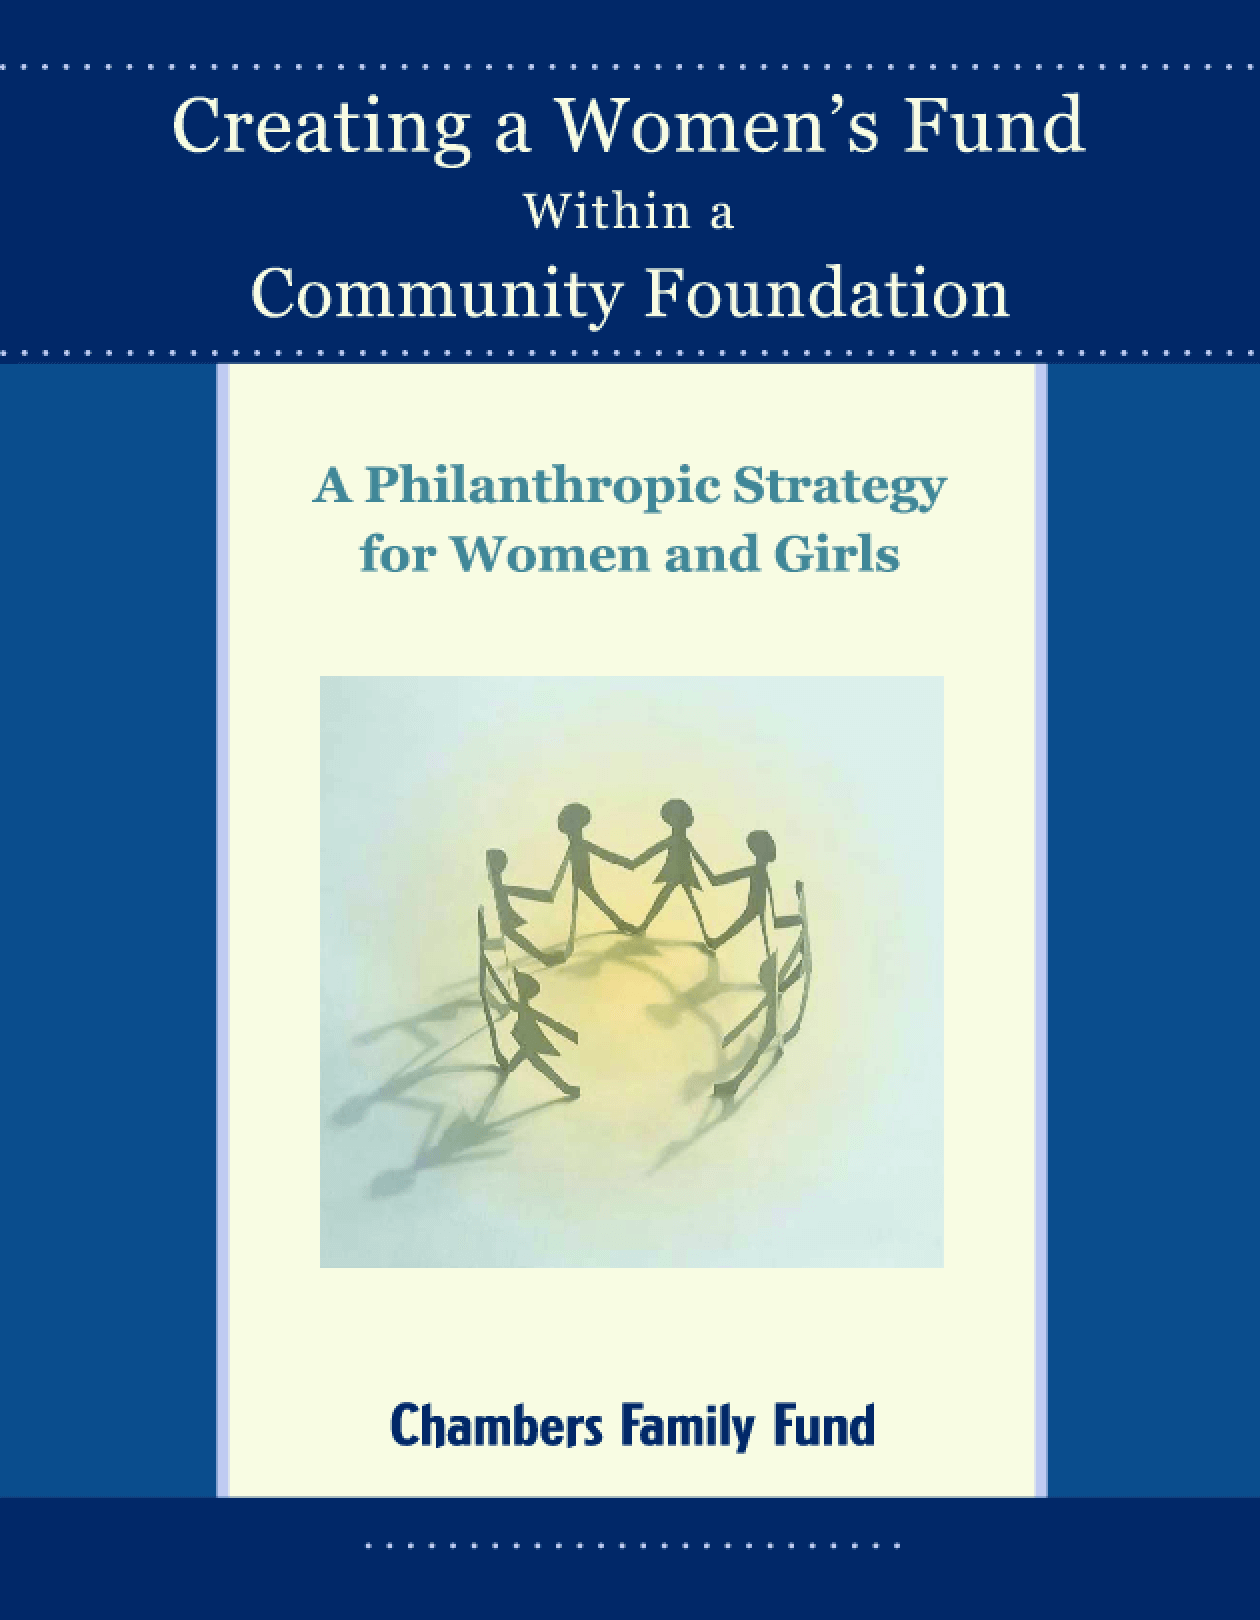 Creating a Women's Fund Within a Community Foundation: A Philanthropic Strategy for Women and Girls